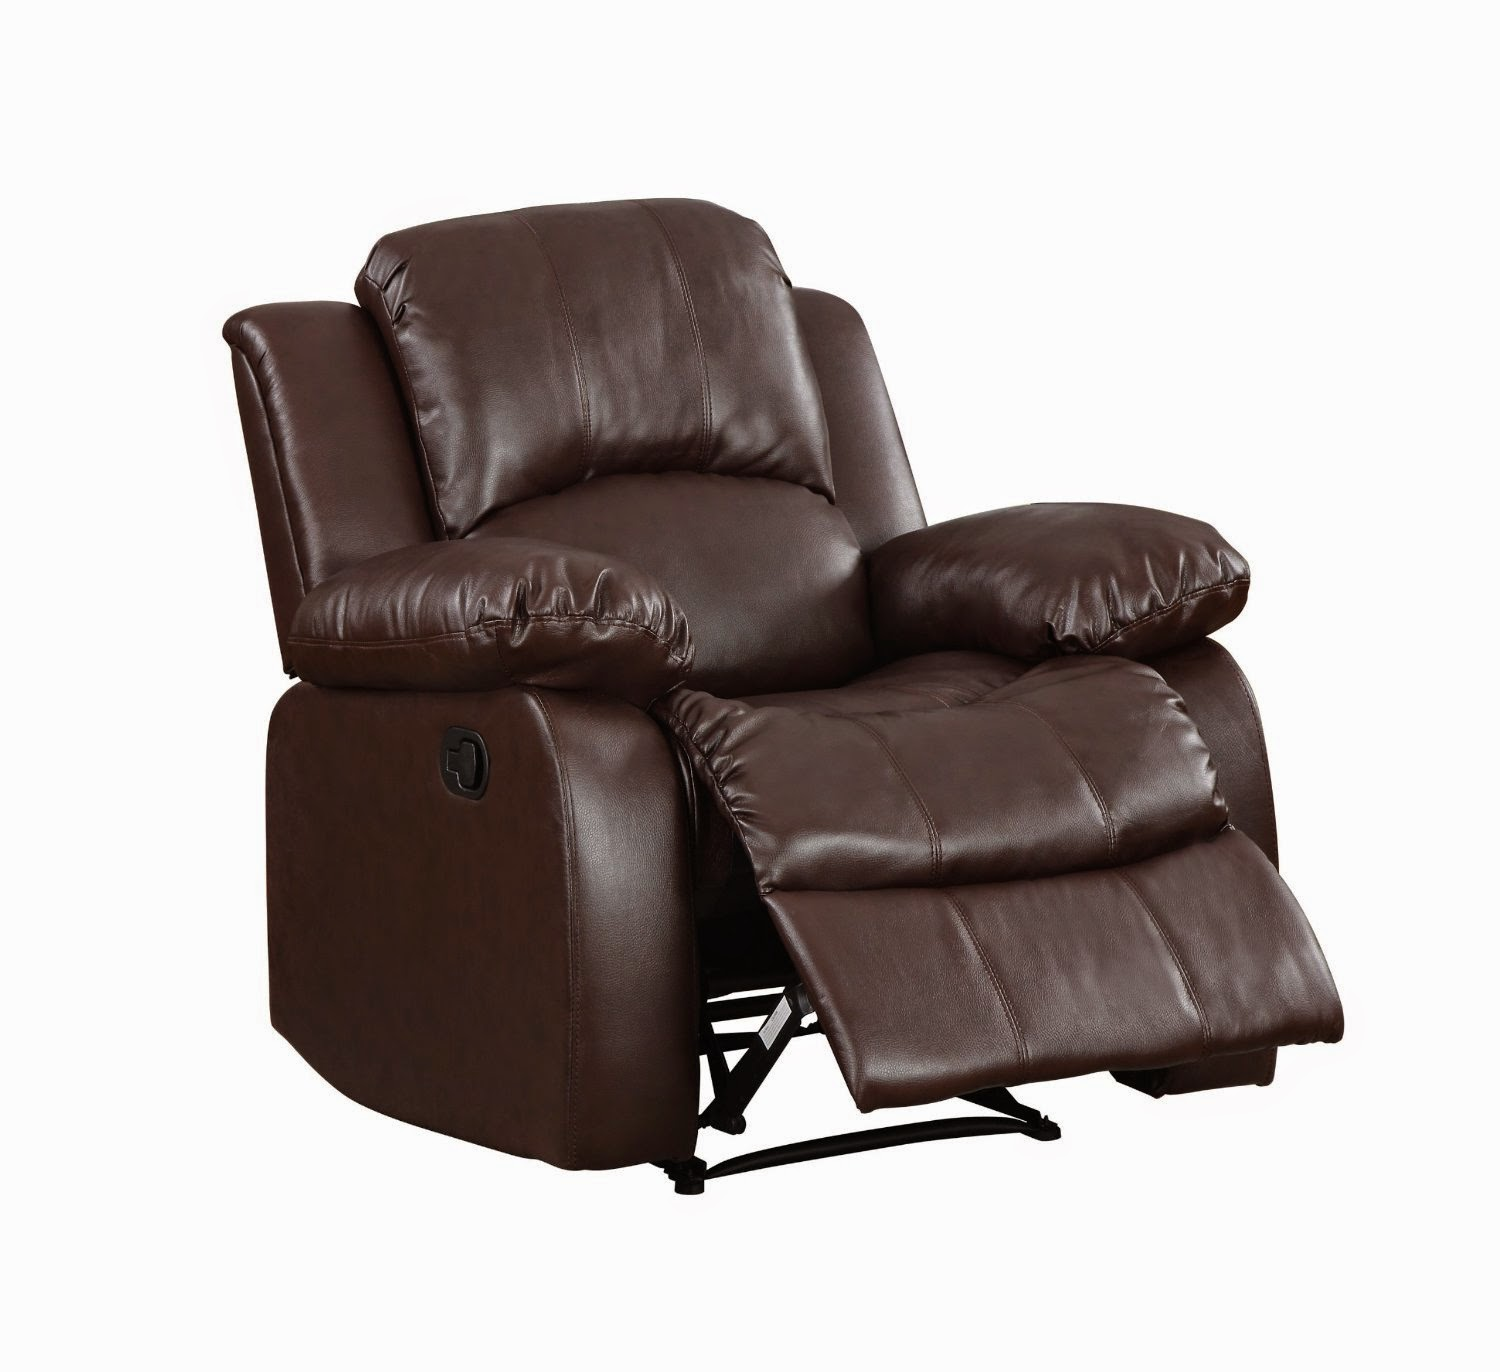 Cheap Reclining Sofas Sale: Leather Reclining Sofa Costco